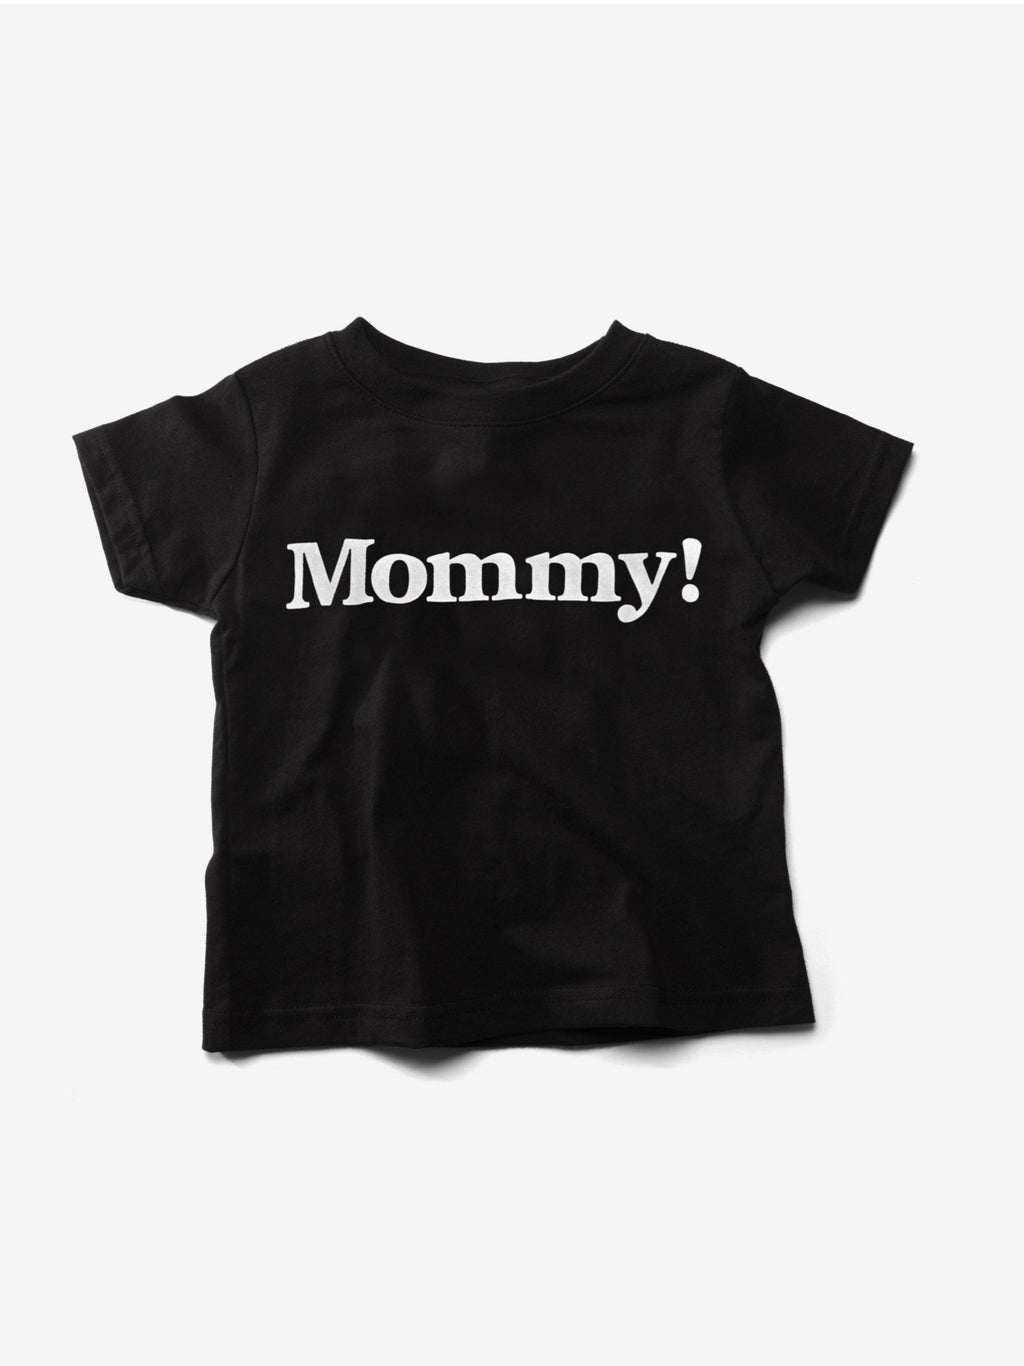 Billy! Mommy! black short sleeved cotton t shirt